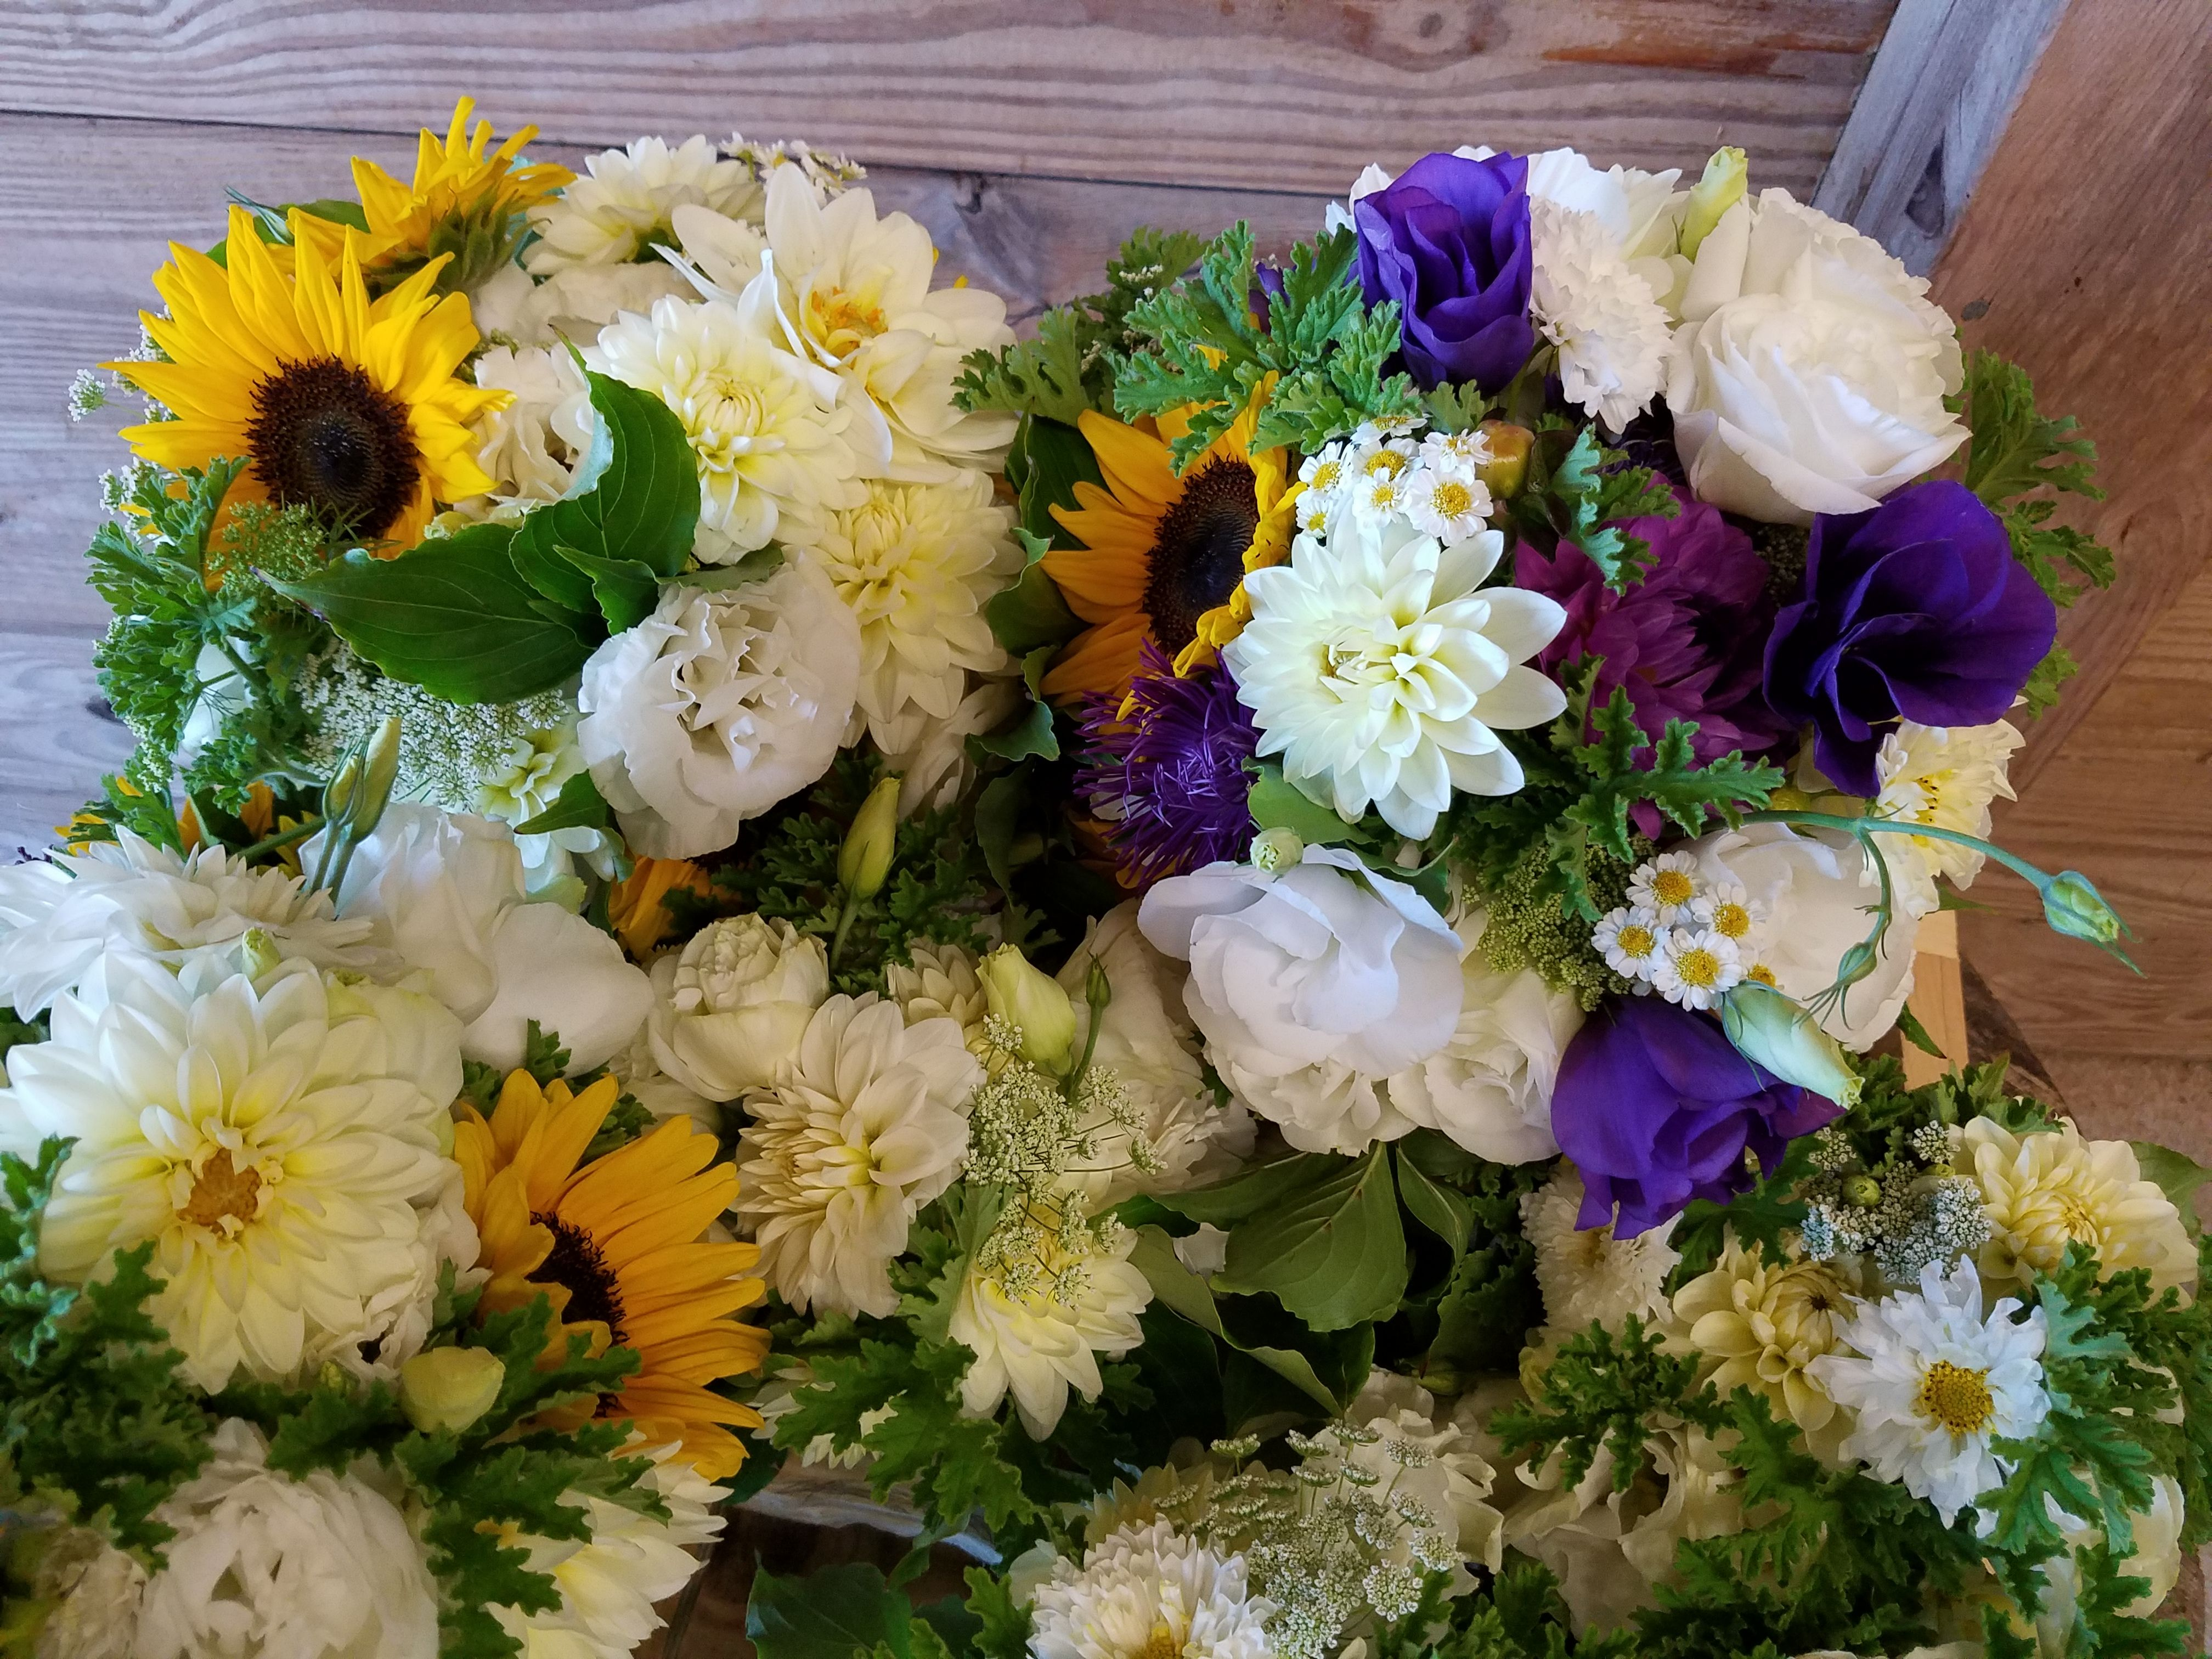 Pin by South County Flowers on September Flowers in 2020